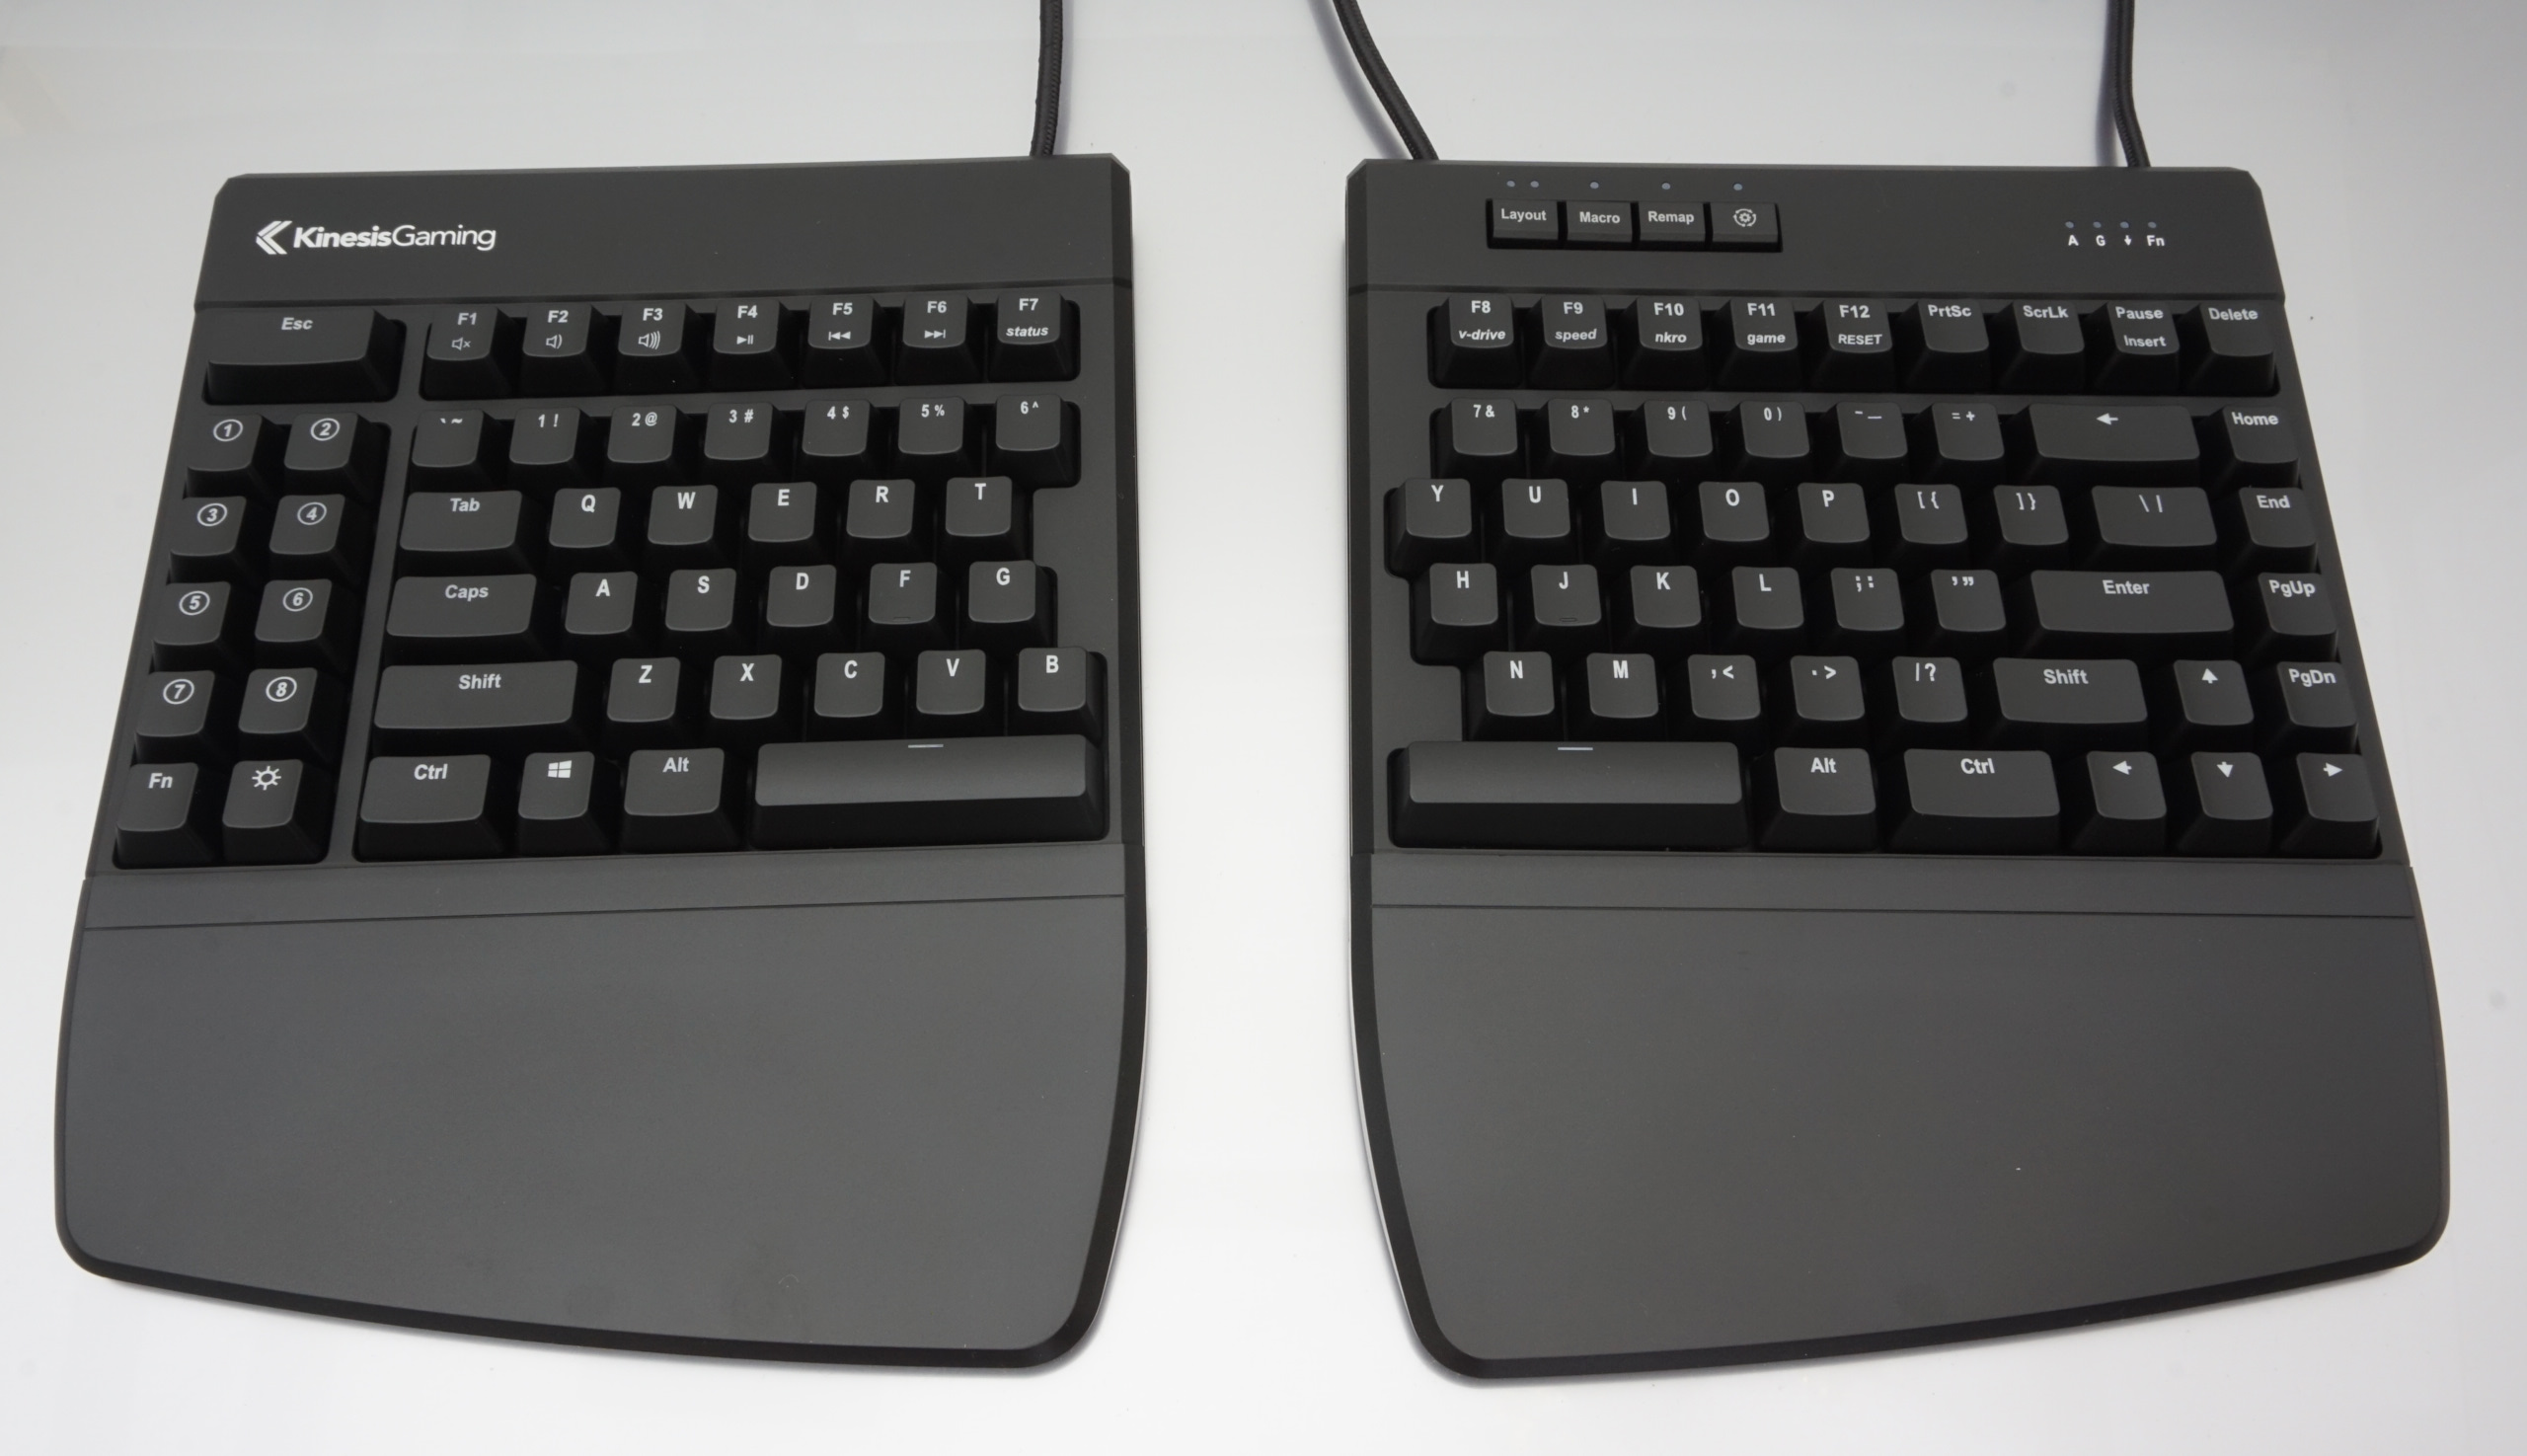 The Kinesis Freestyle Edge Gaming Mechanical Keyboard - The Kinesis